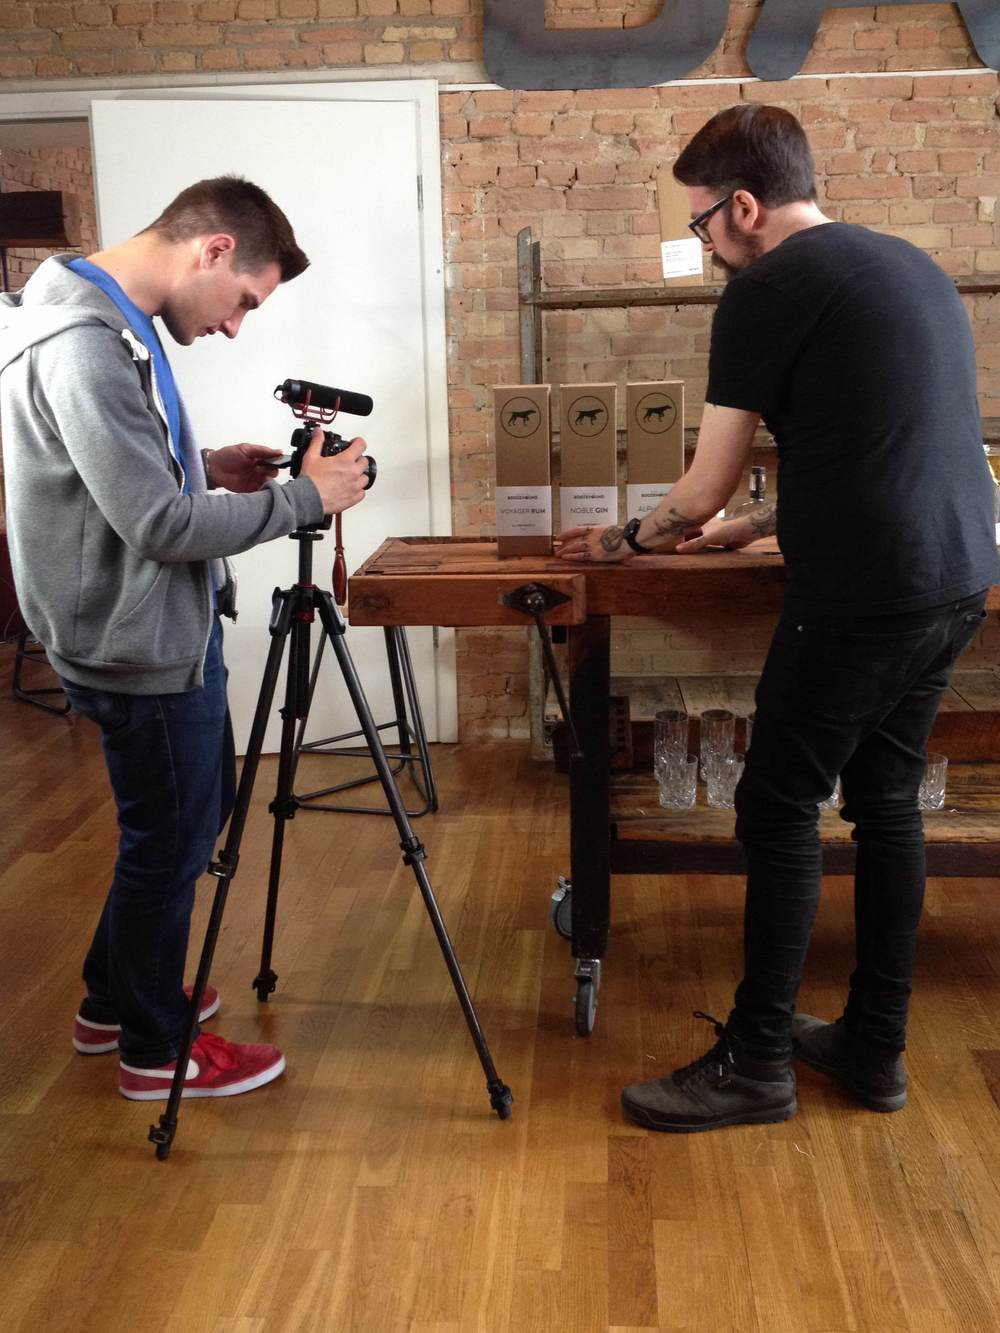 Setting up the photo shoot for our prototypes.